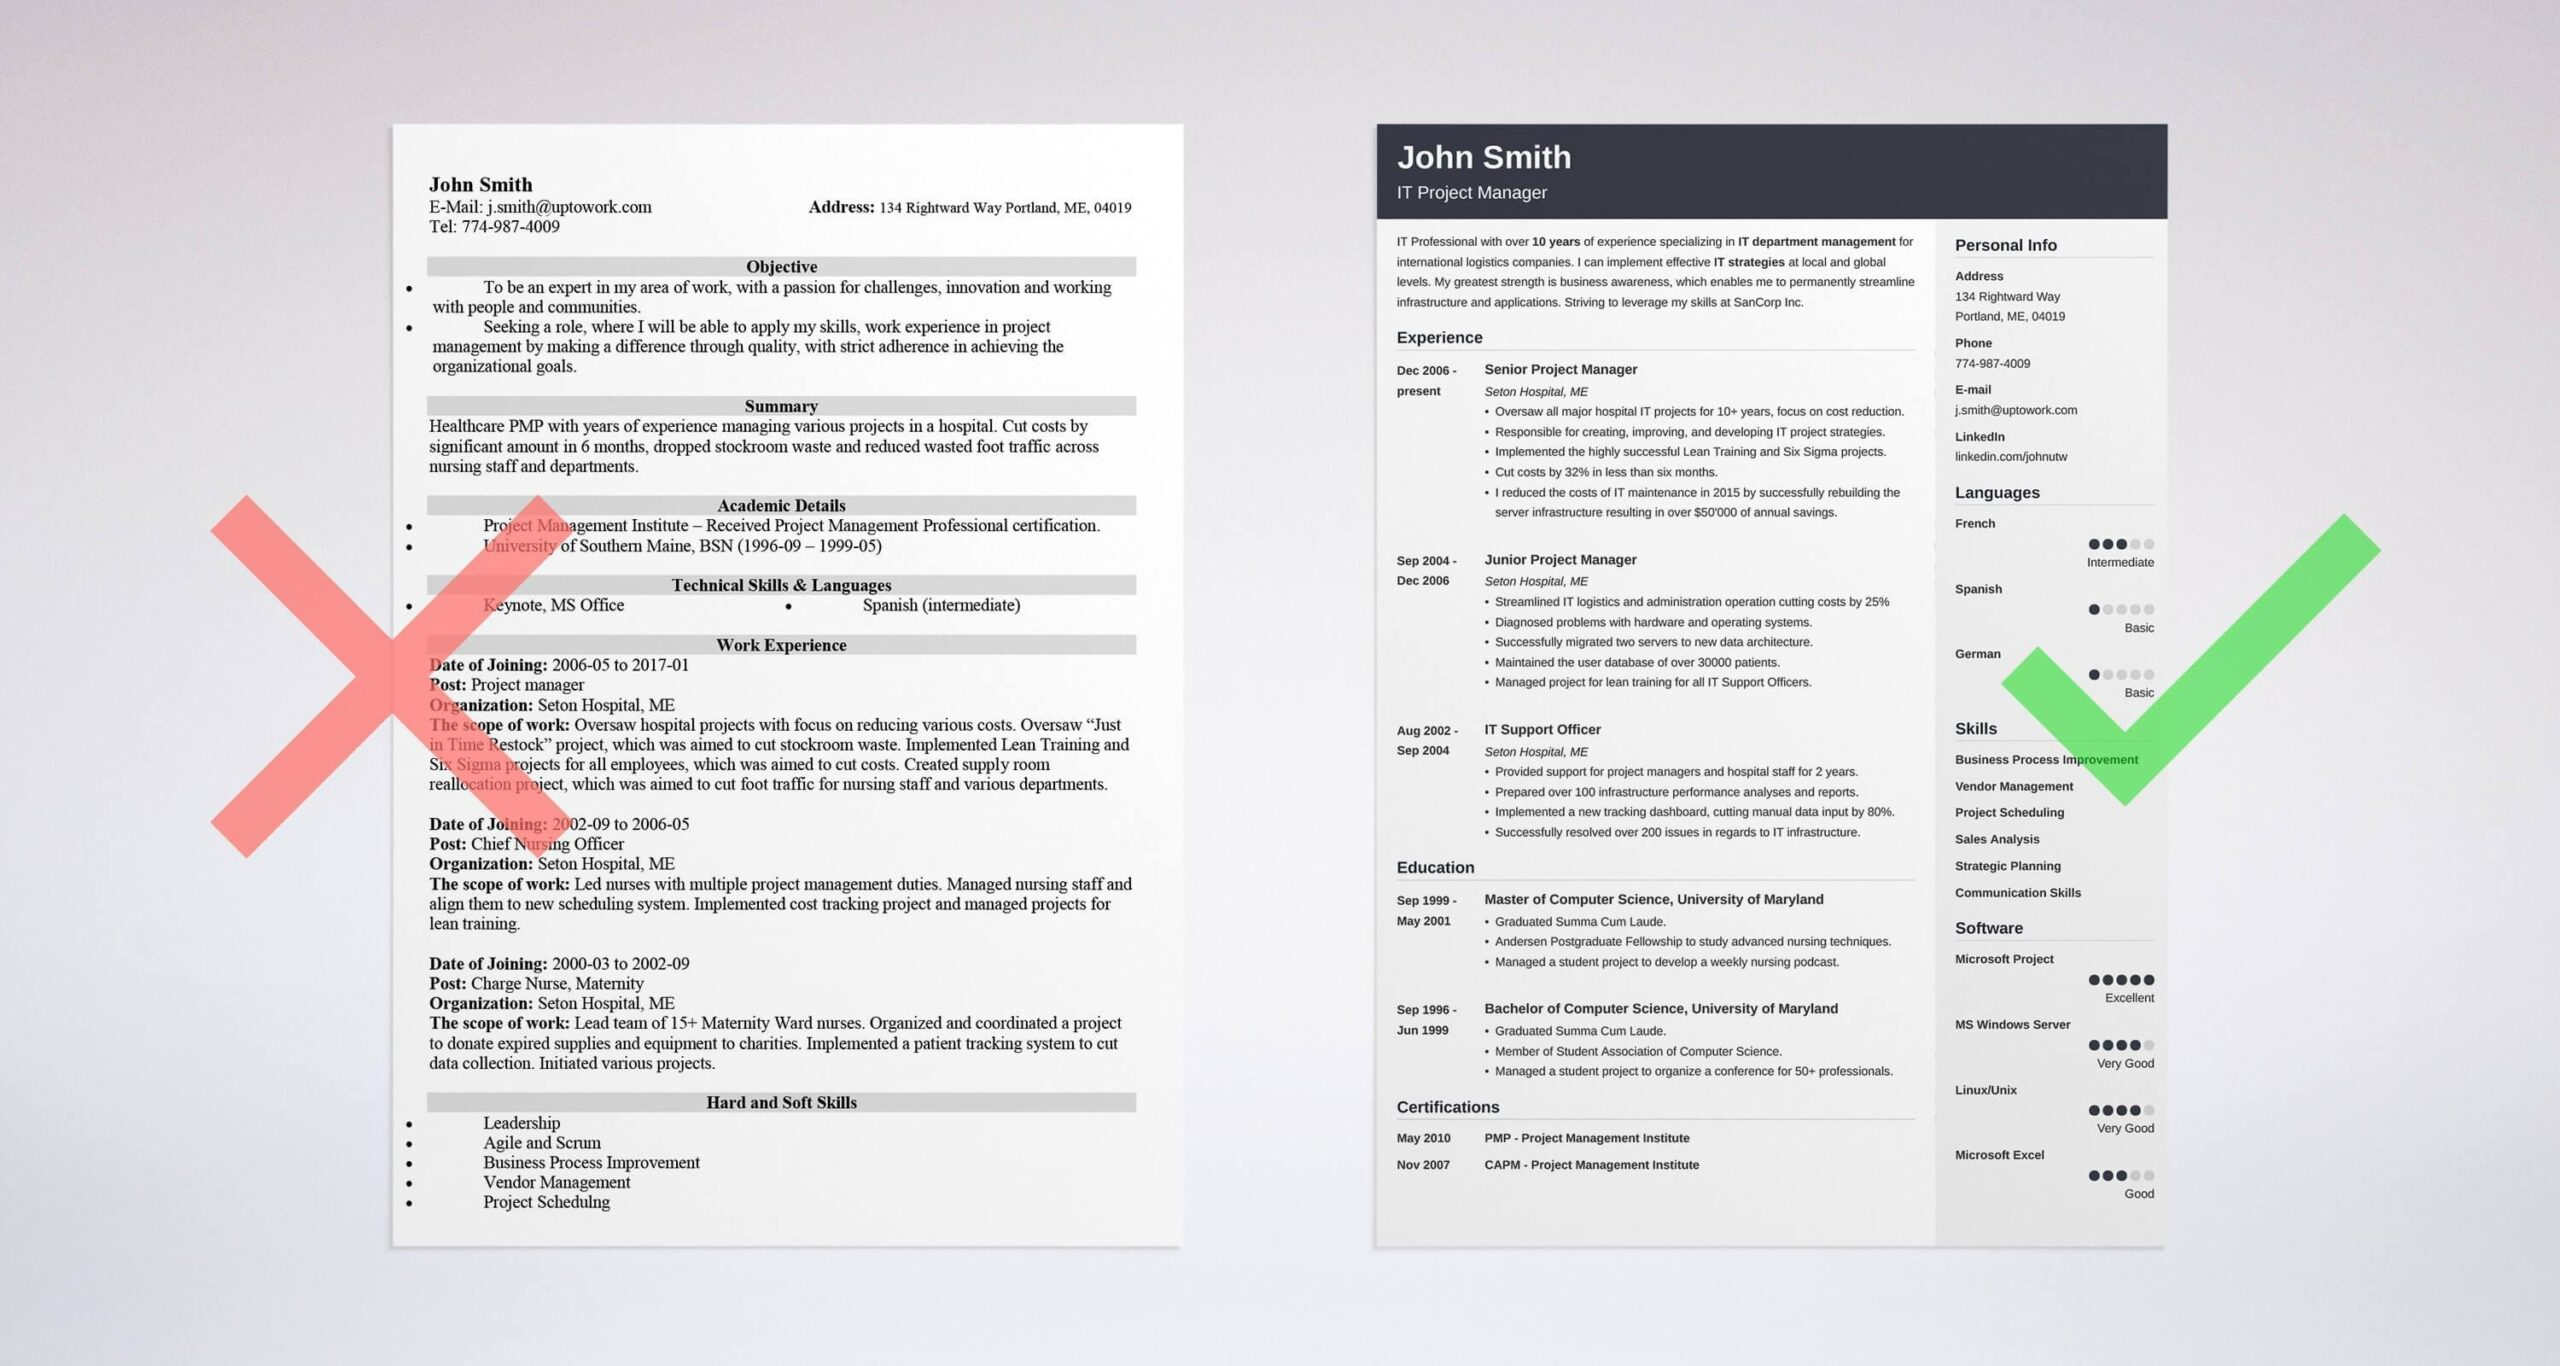 best resume tips tricks writing advice samples professional project manager makeover Resume Professional Resume Tips